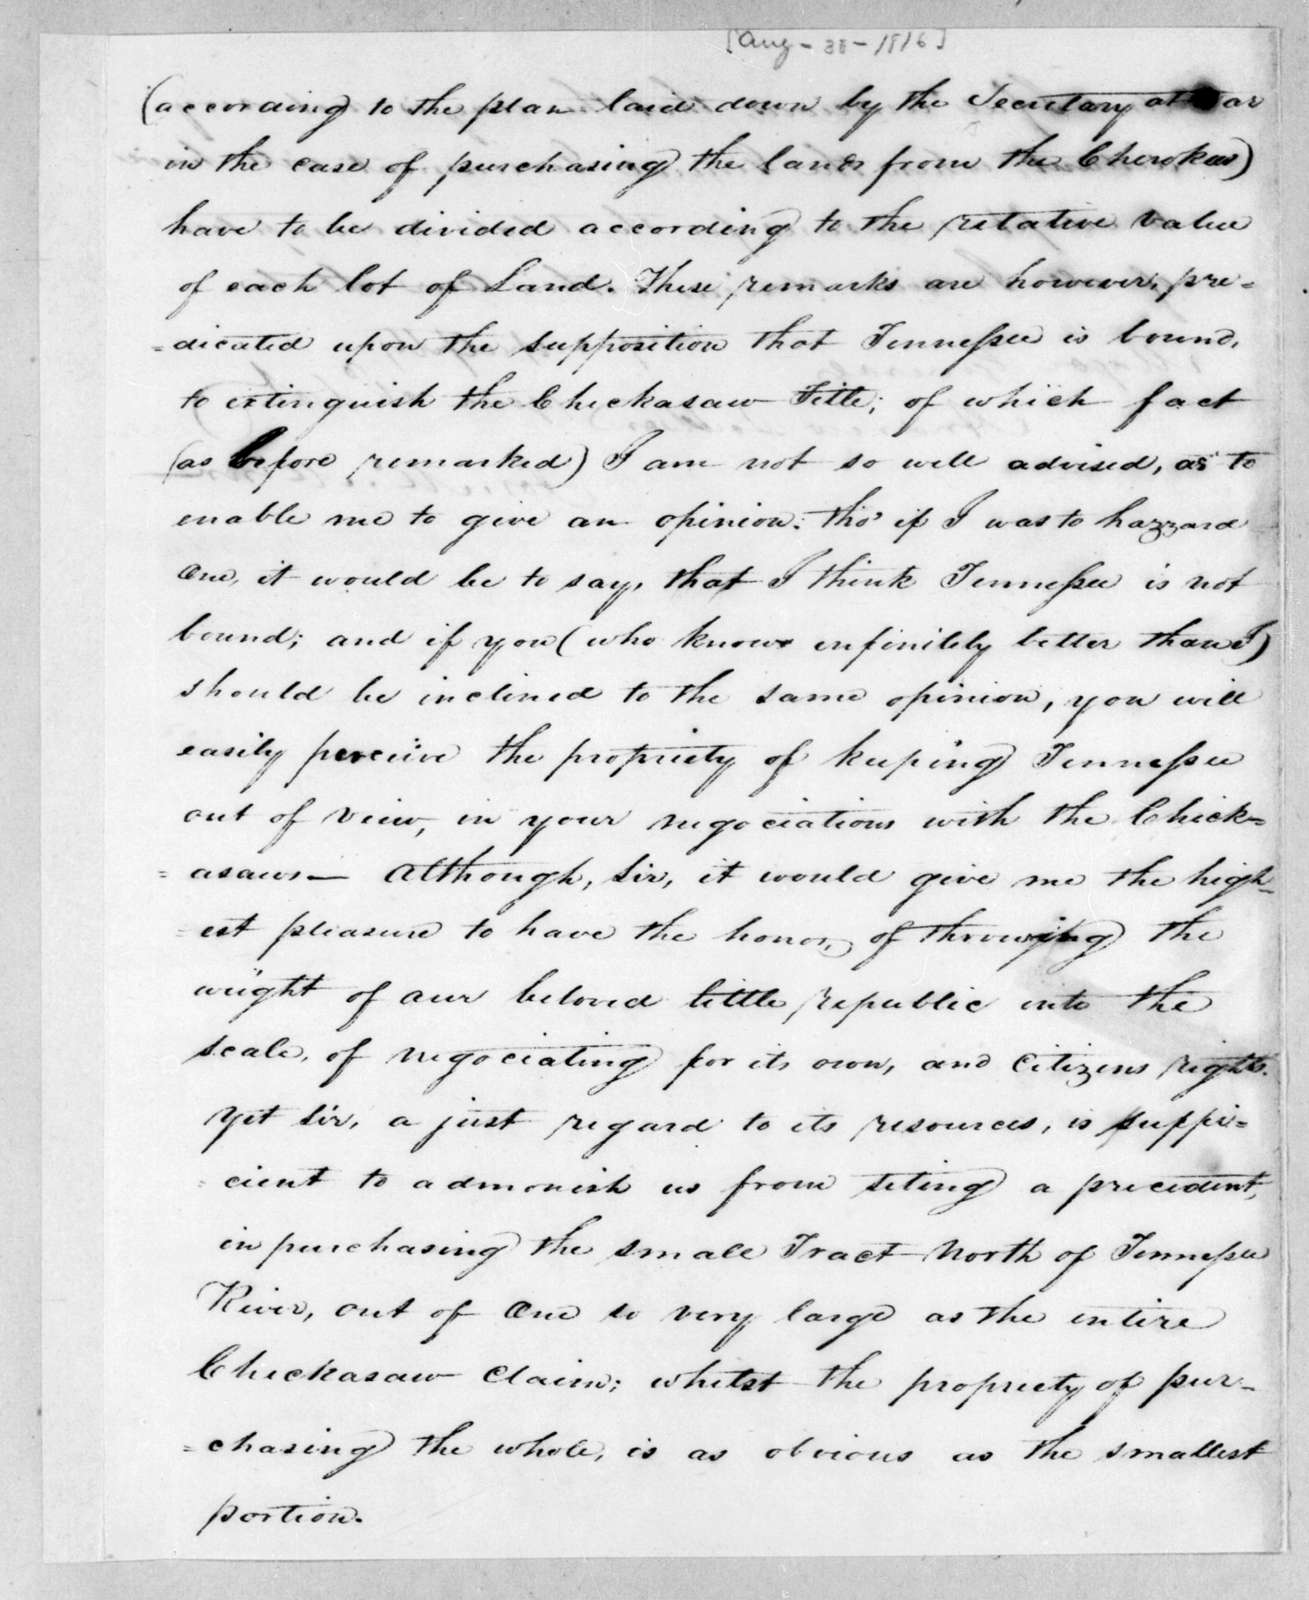 Joseph McMinn to Andrew Jackson, August 30, 1816